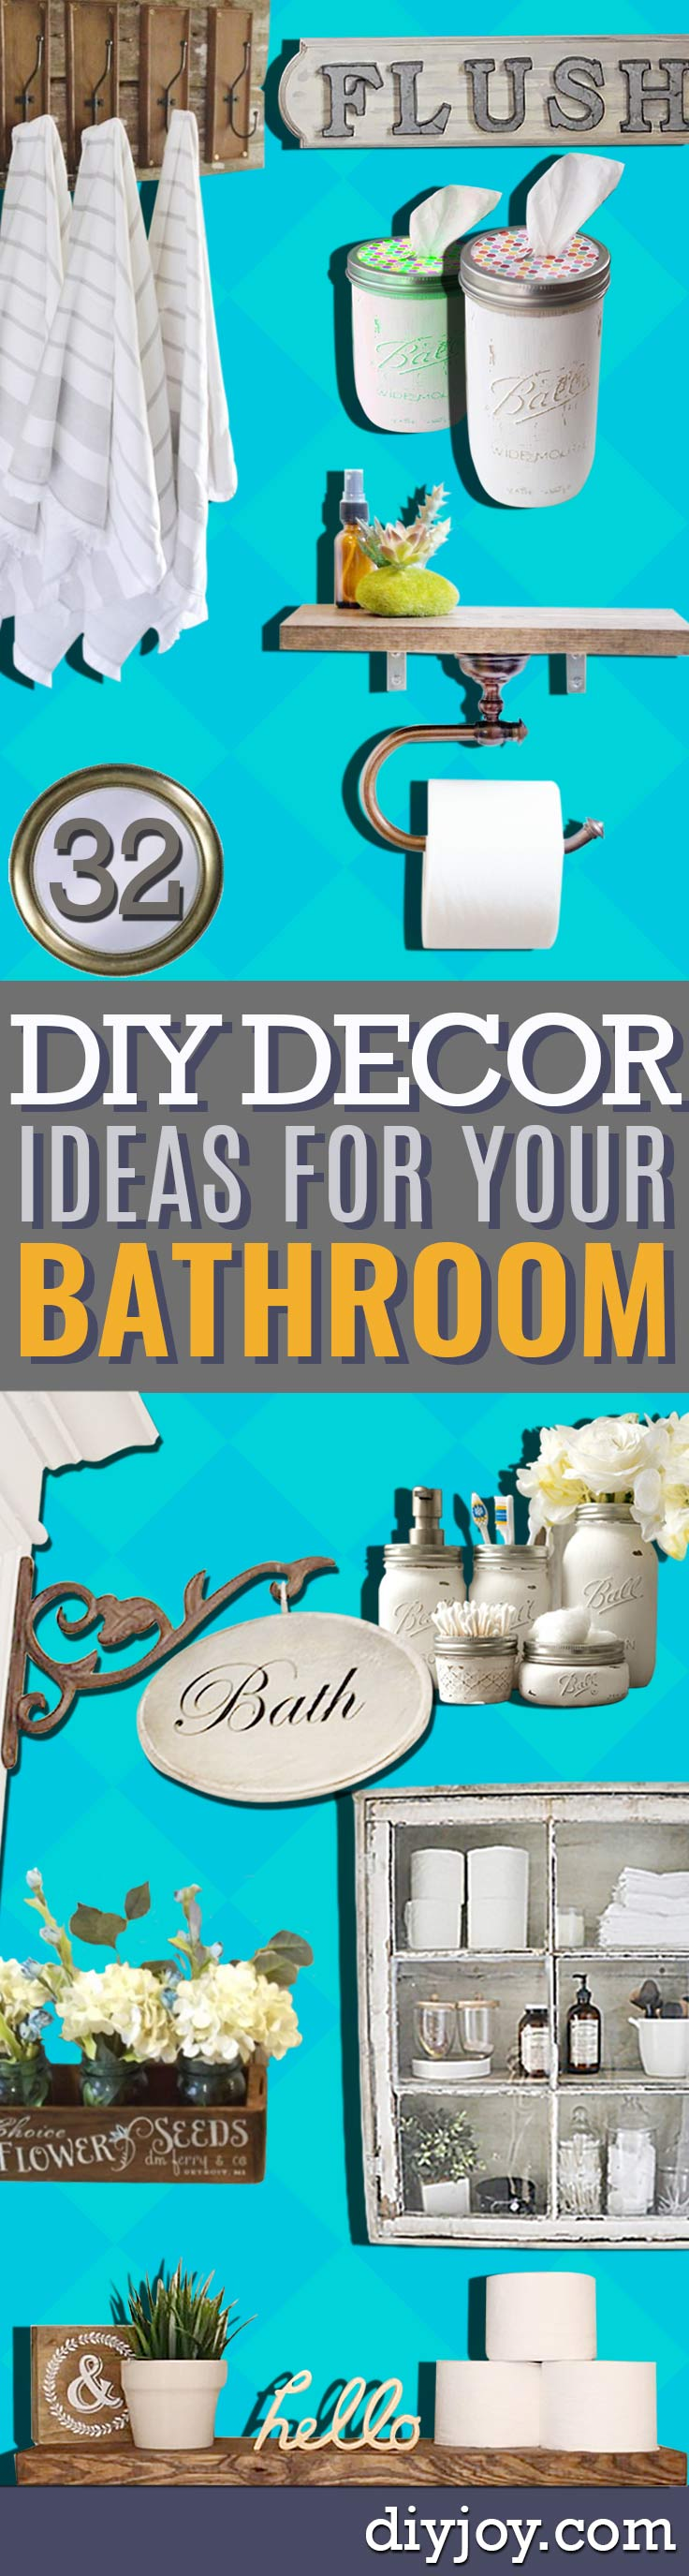 DIY Bathroom Decor Ideas - Cool Do It Yourself Bath Ideas on A Budget, Rustic Bathroom Fixtures, Creative Wall Art, Rugs, Mason Jar Accessories and Easy Projects http://diyjoy.com/diy-bathroom-decor-ideas